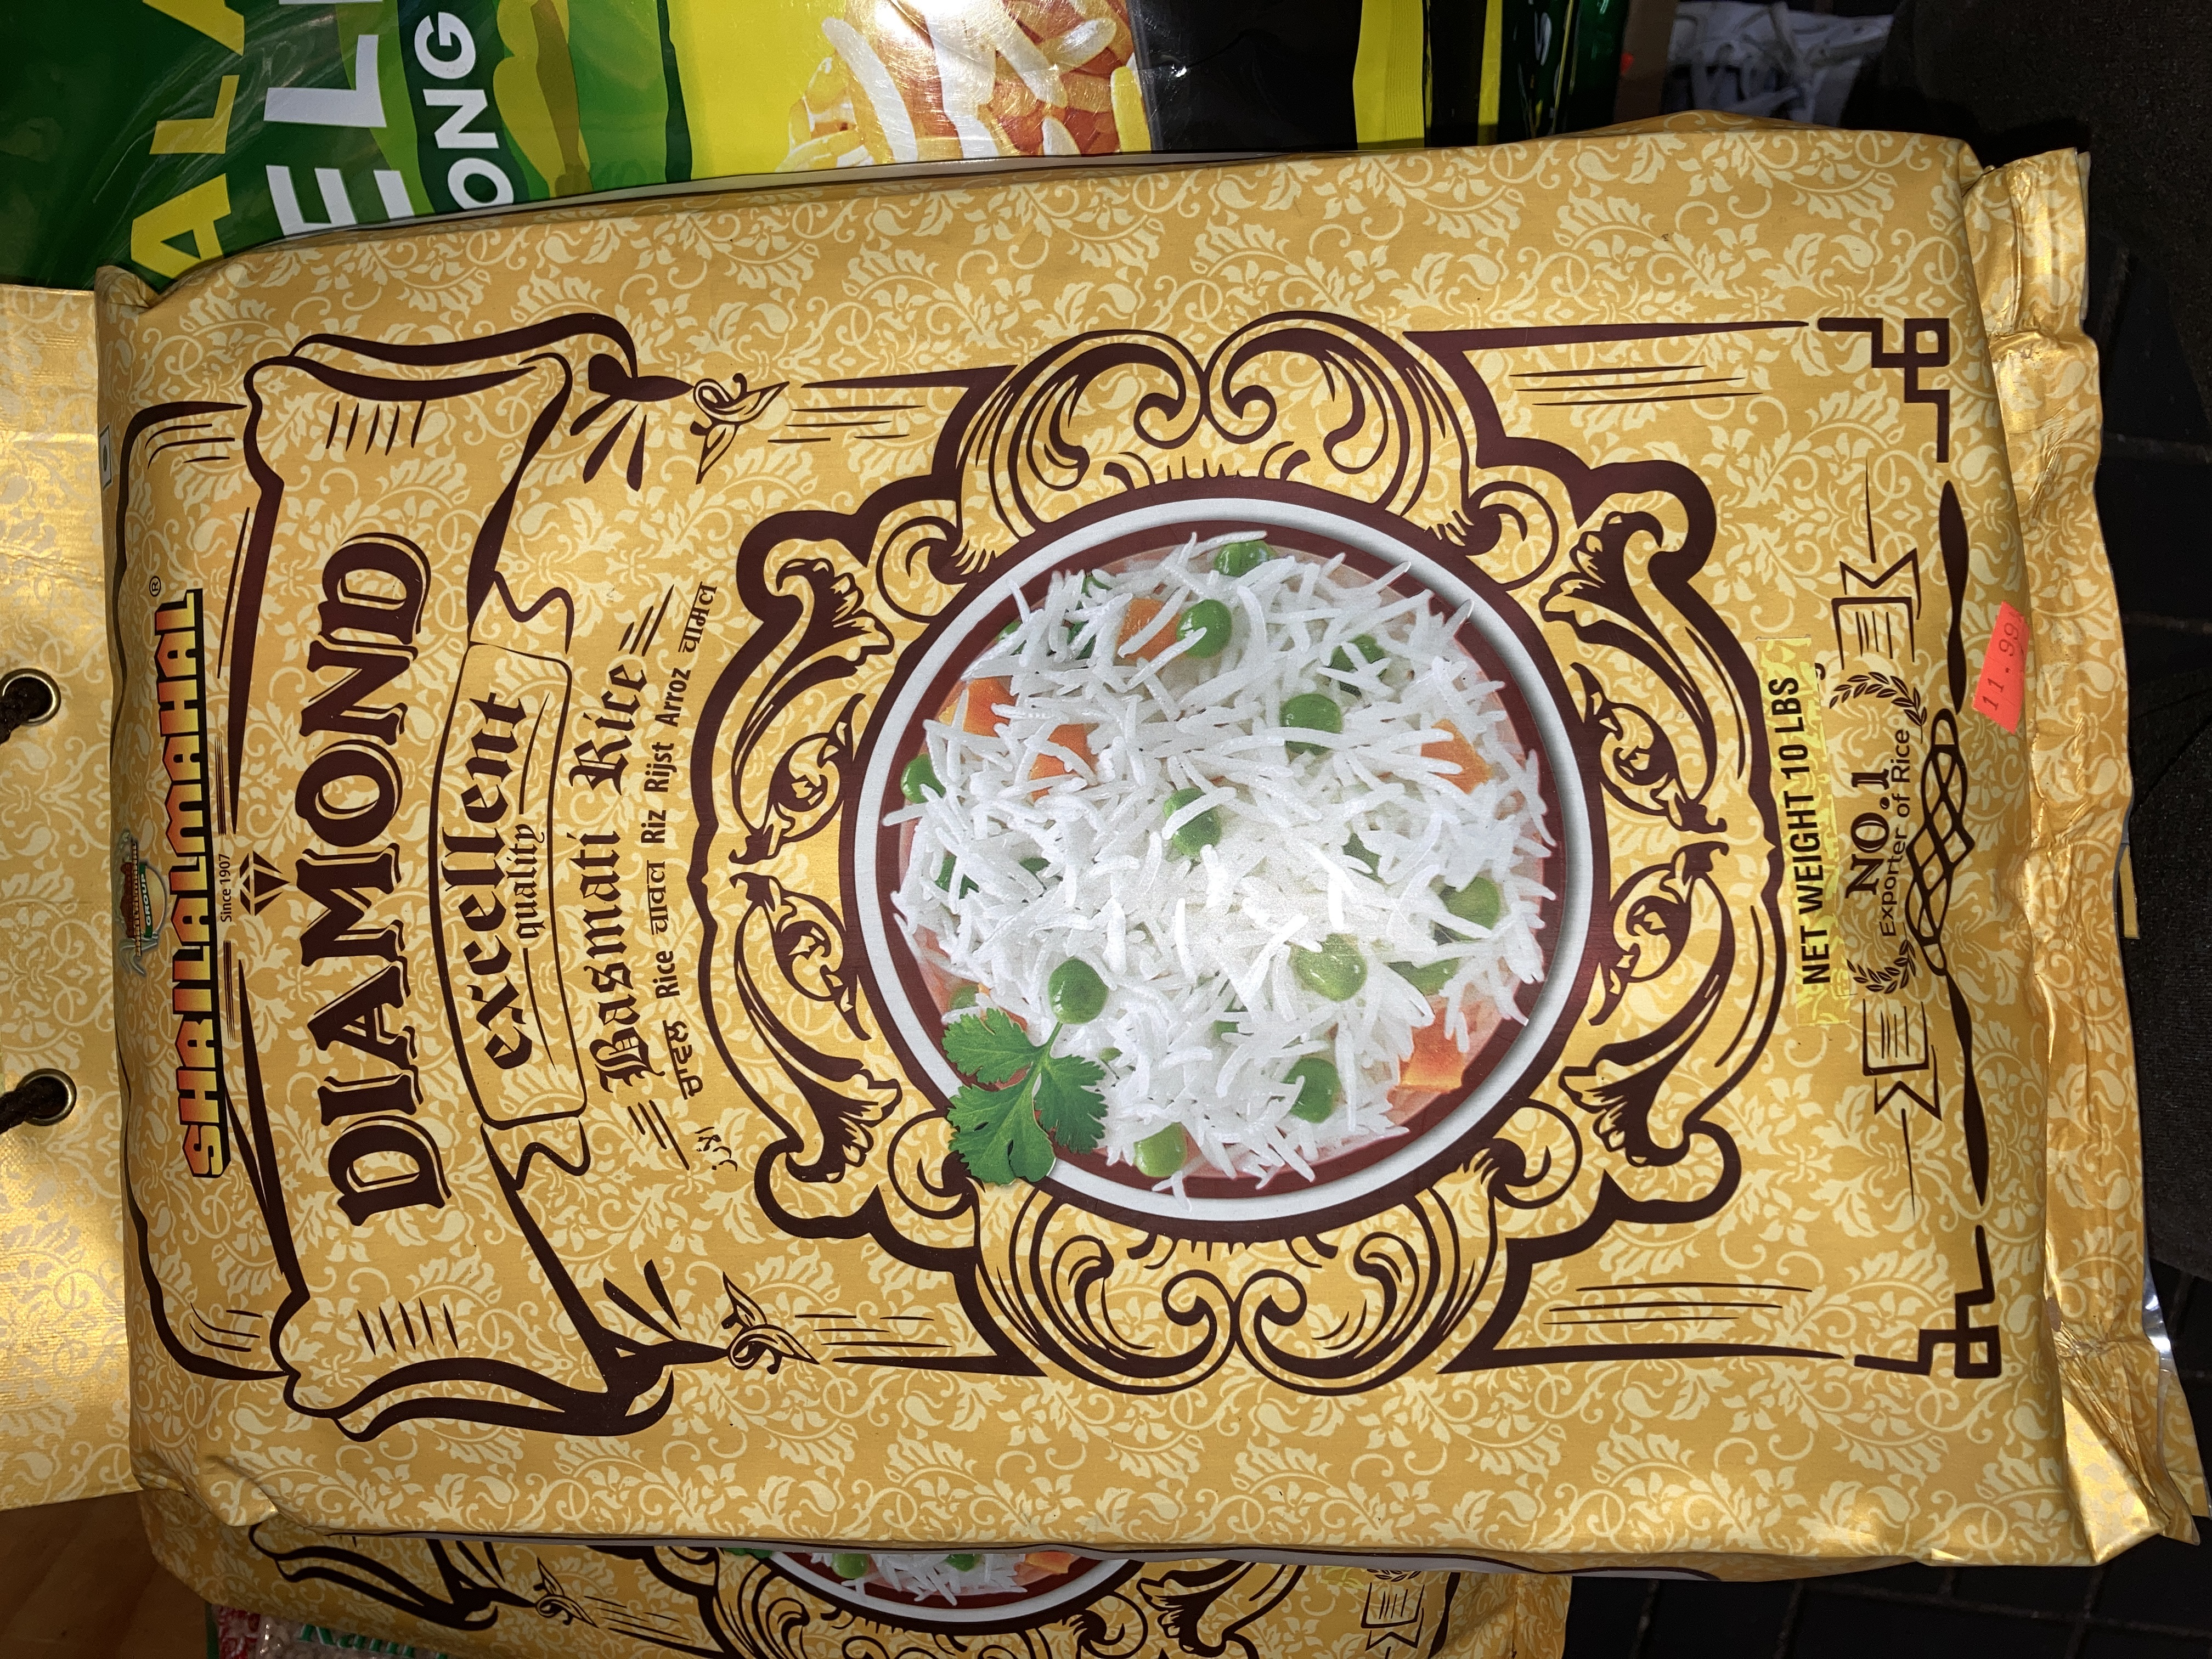 Shrilalmahal Diamond BASMATI RICE 10LBS